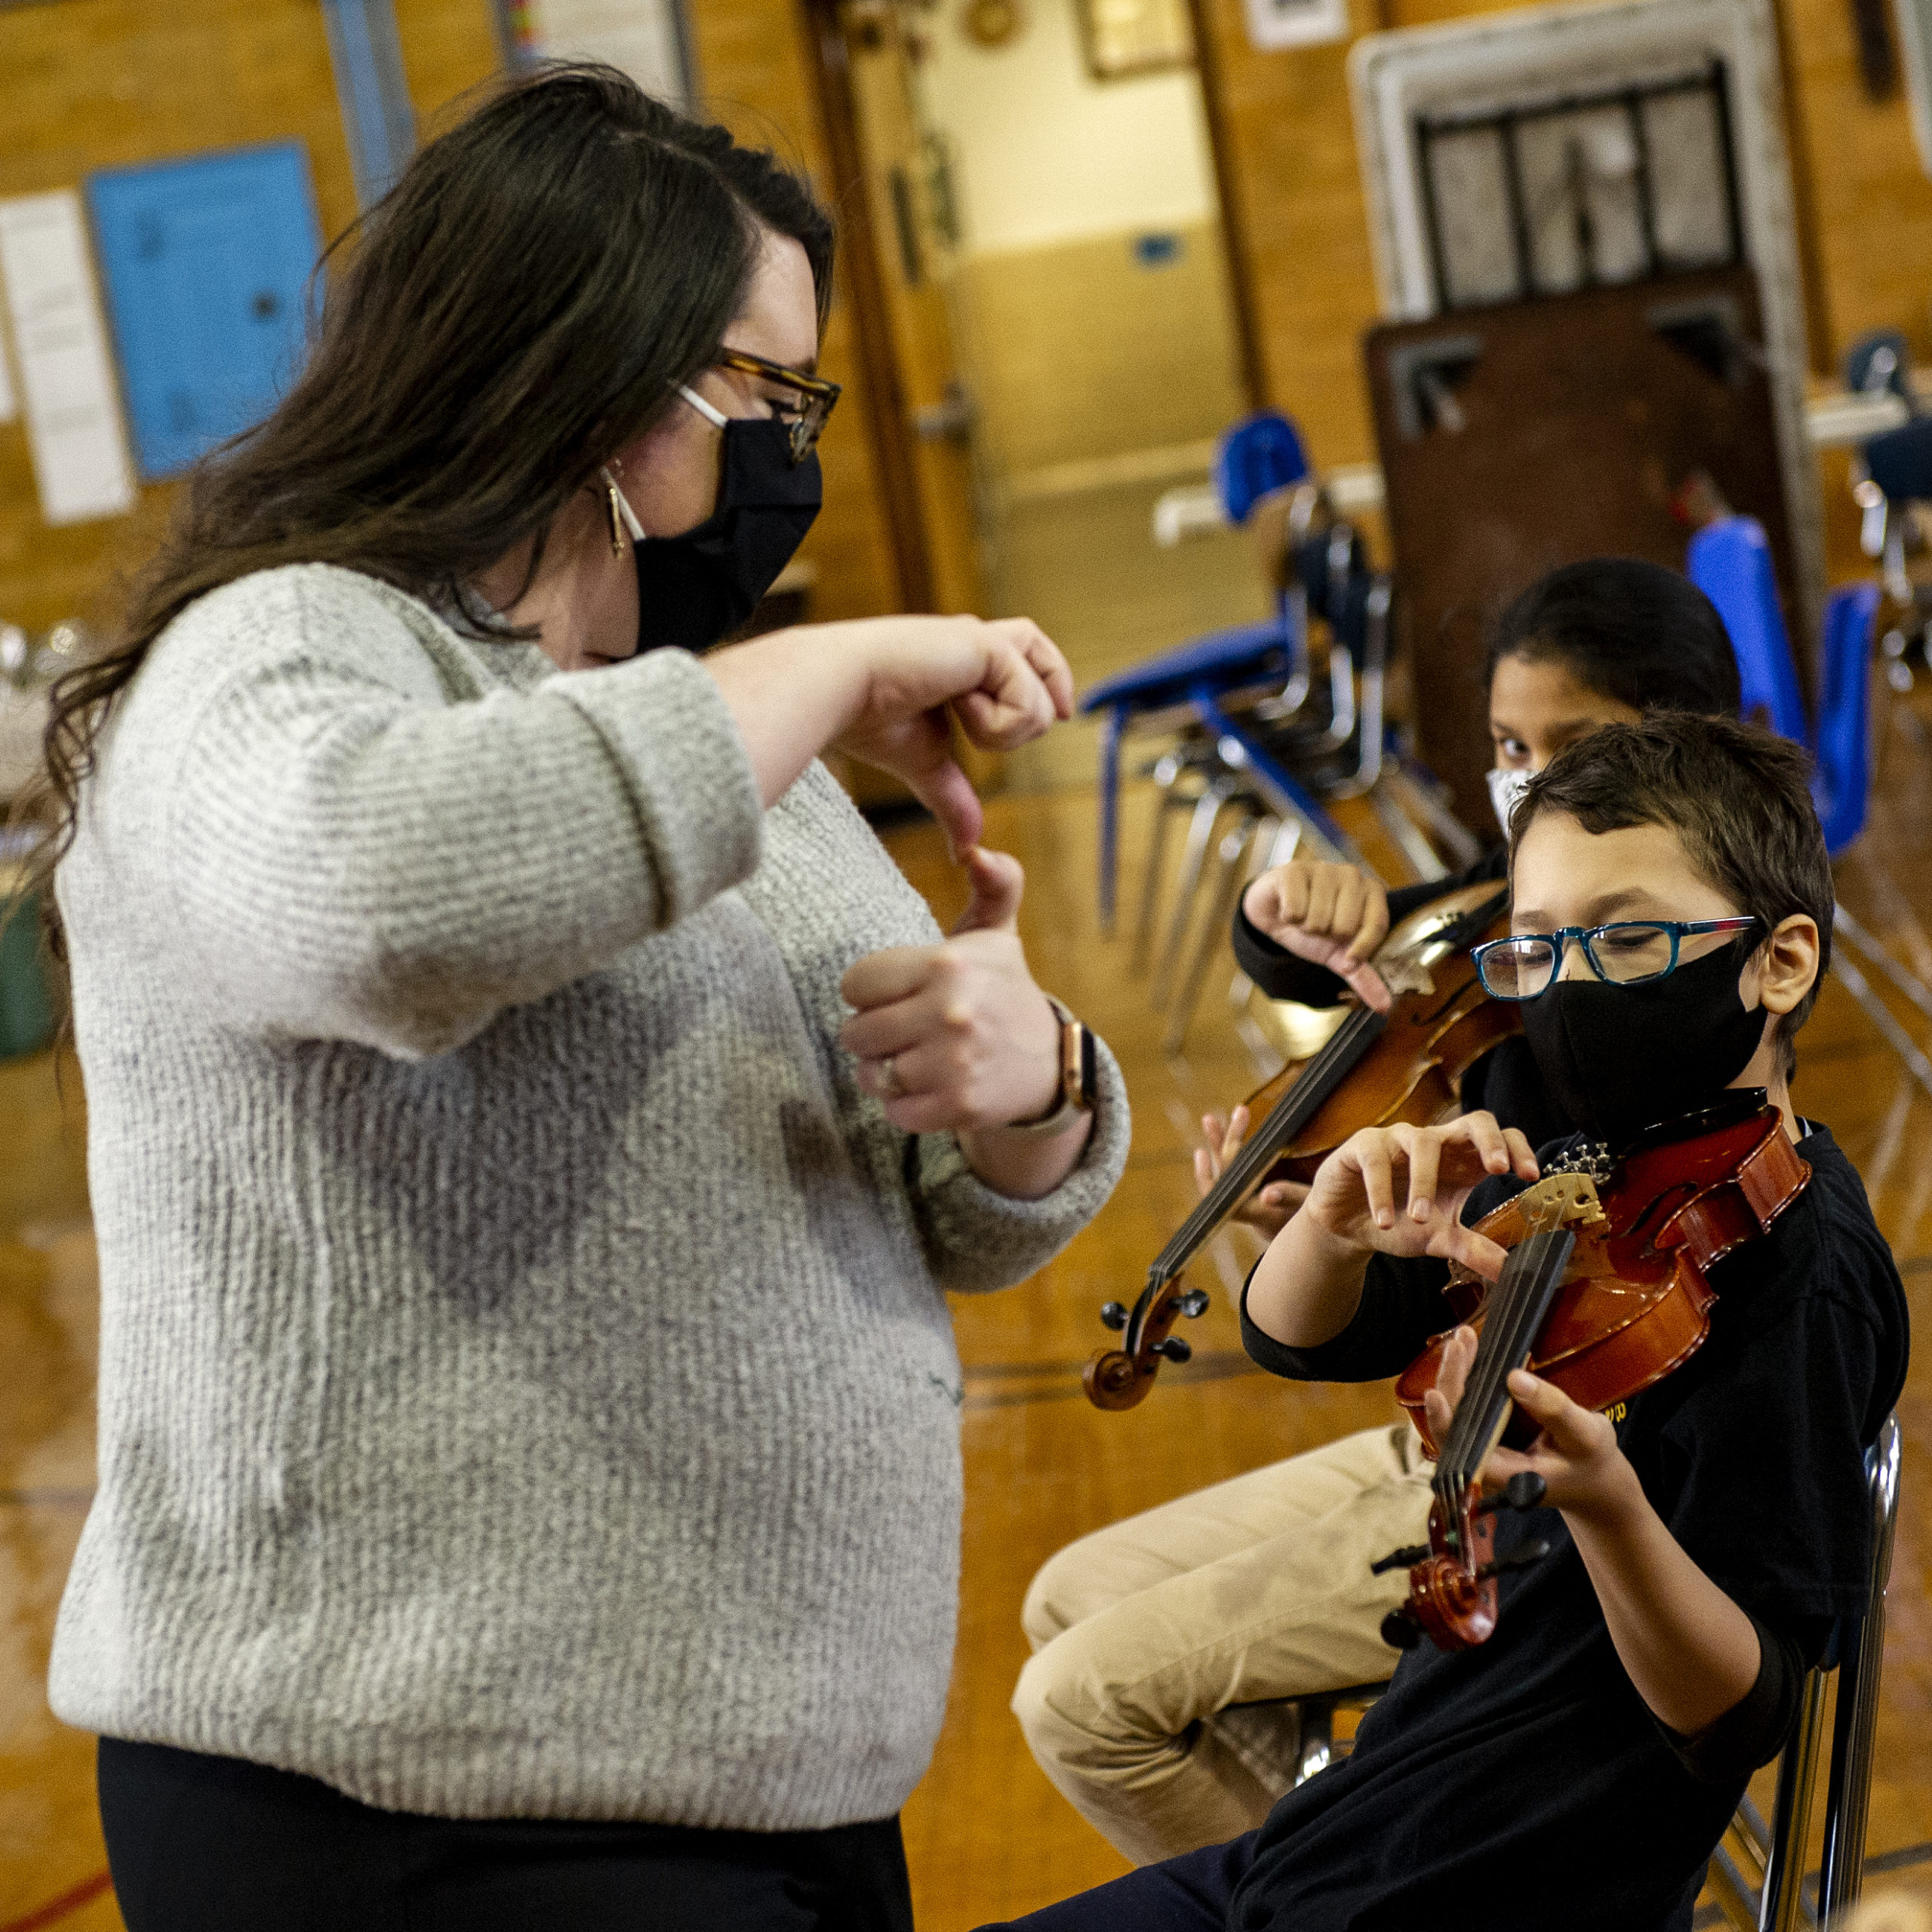 A music teacher instructs a student on how to pluck violin strings.